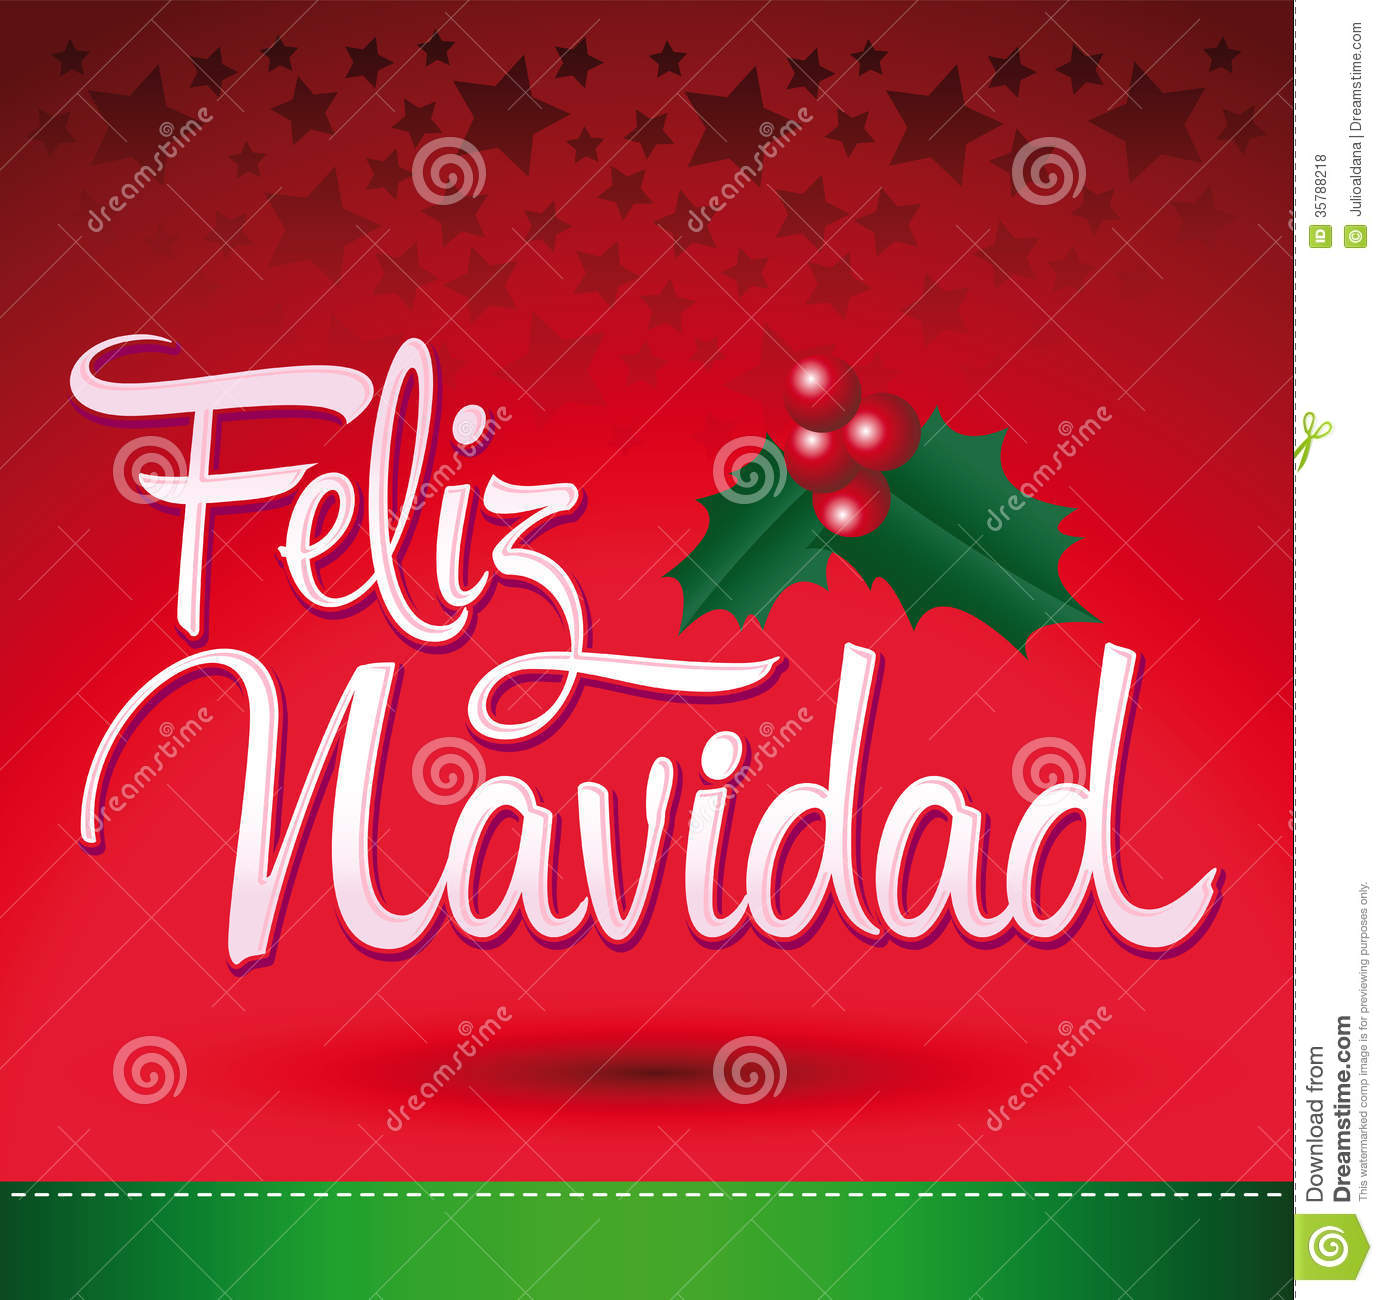 Merry Christmas In Spanish.Christmas Quotes Spanish Ideas Christmas Decorating